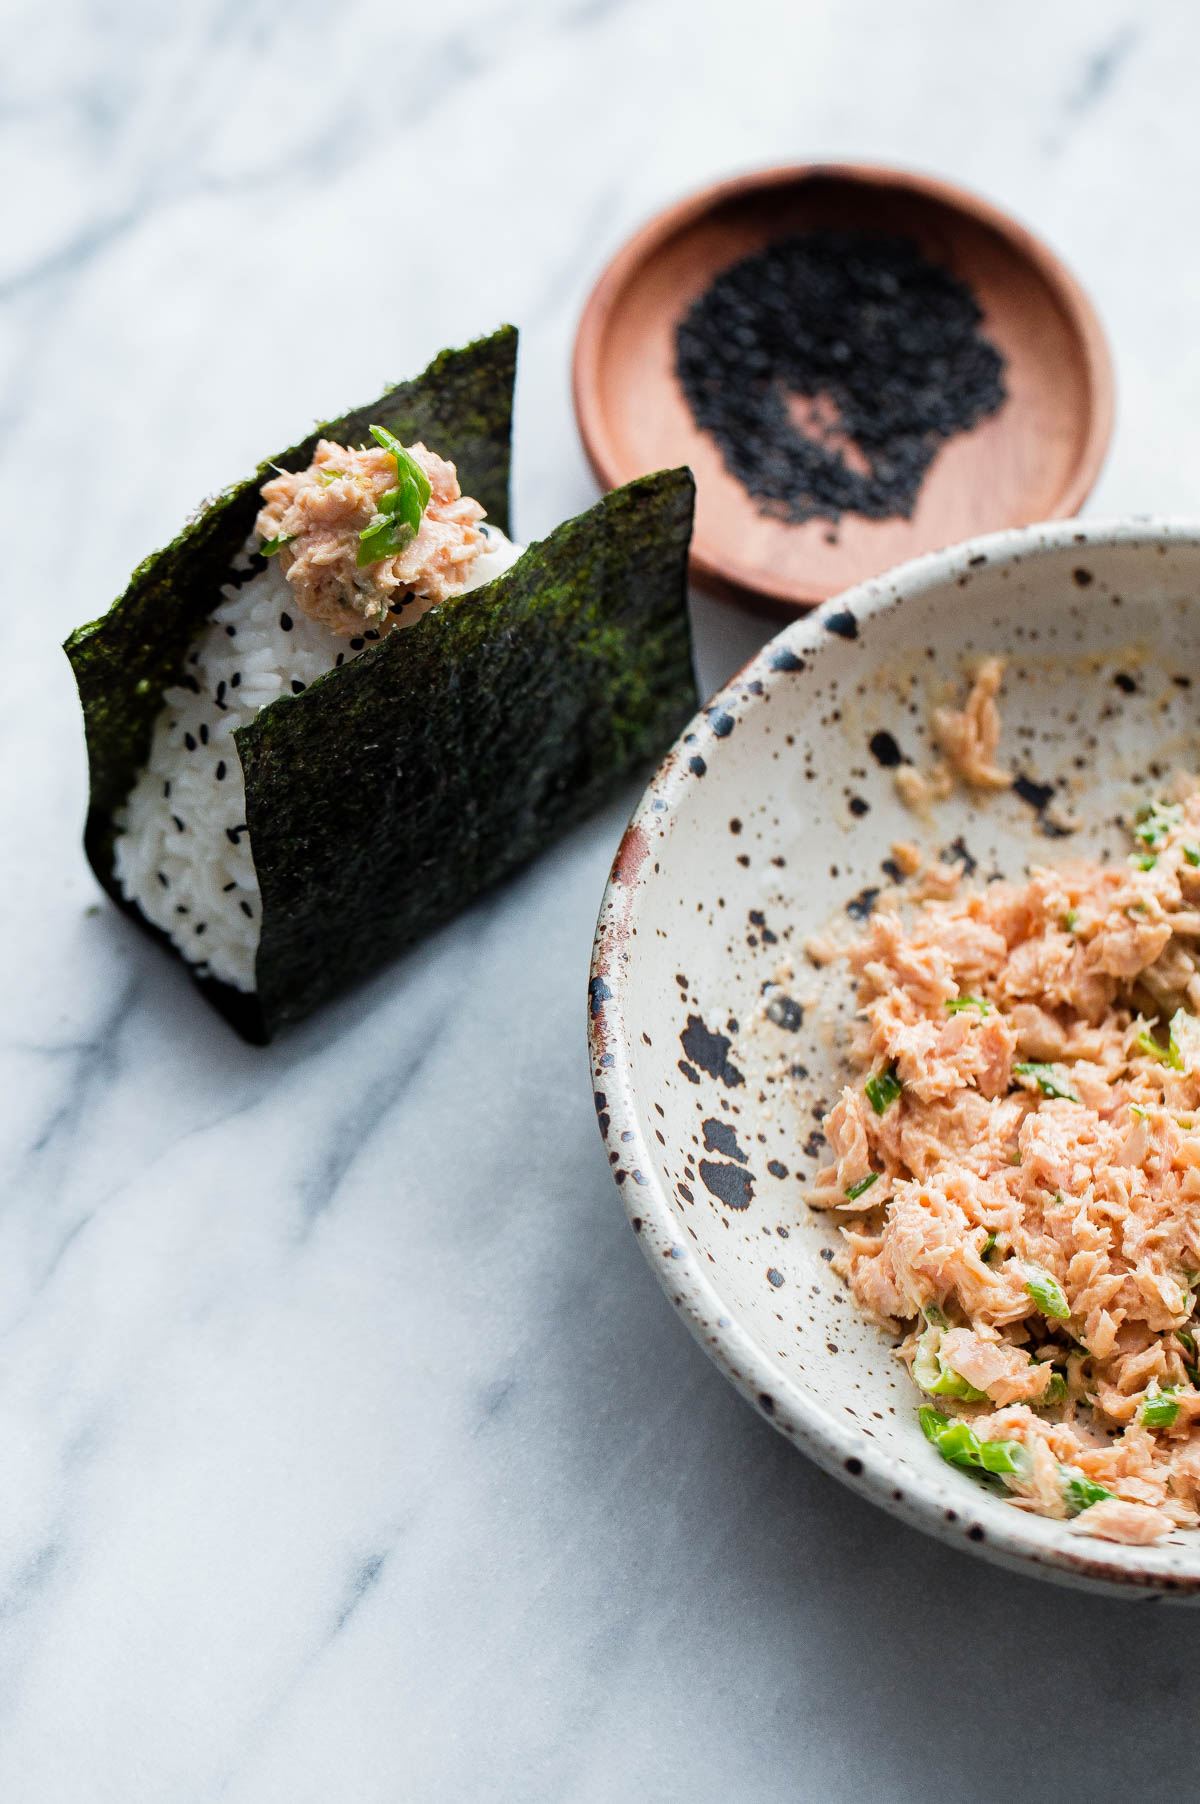 Spicy Tuna Onigiri - homemade Japanese onigiri (traditional rice balls) filled with an EASY spicy tuna filling made from Bella Portofino olive oil packed tuna, mayonnaise, sriracha, scallions, and rice vinegar! [sponsored]